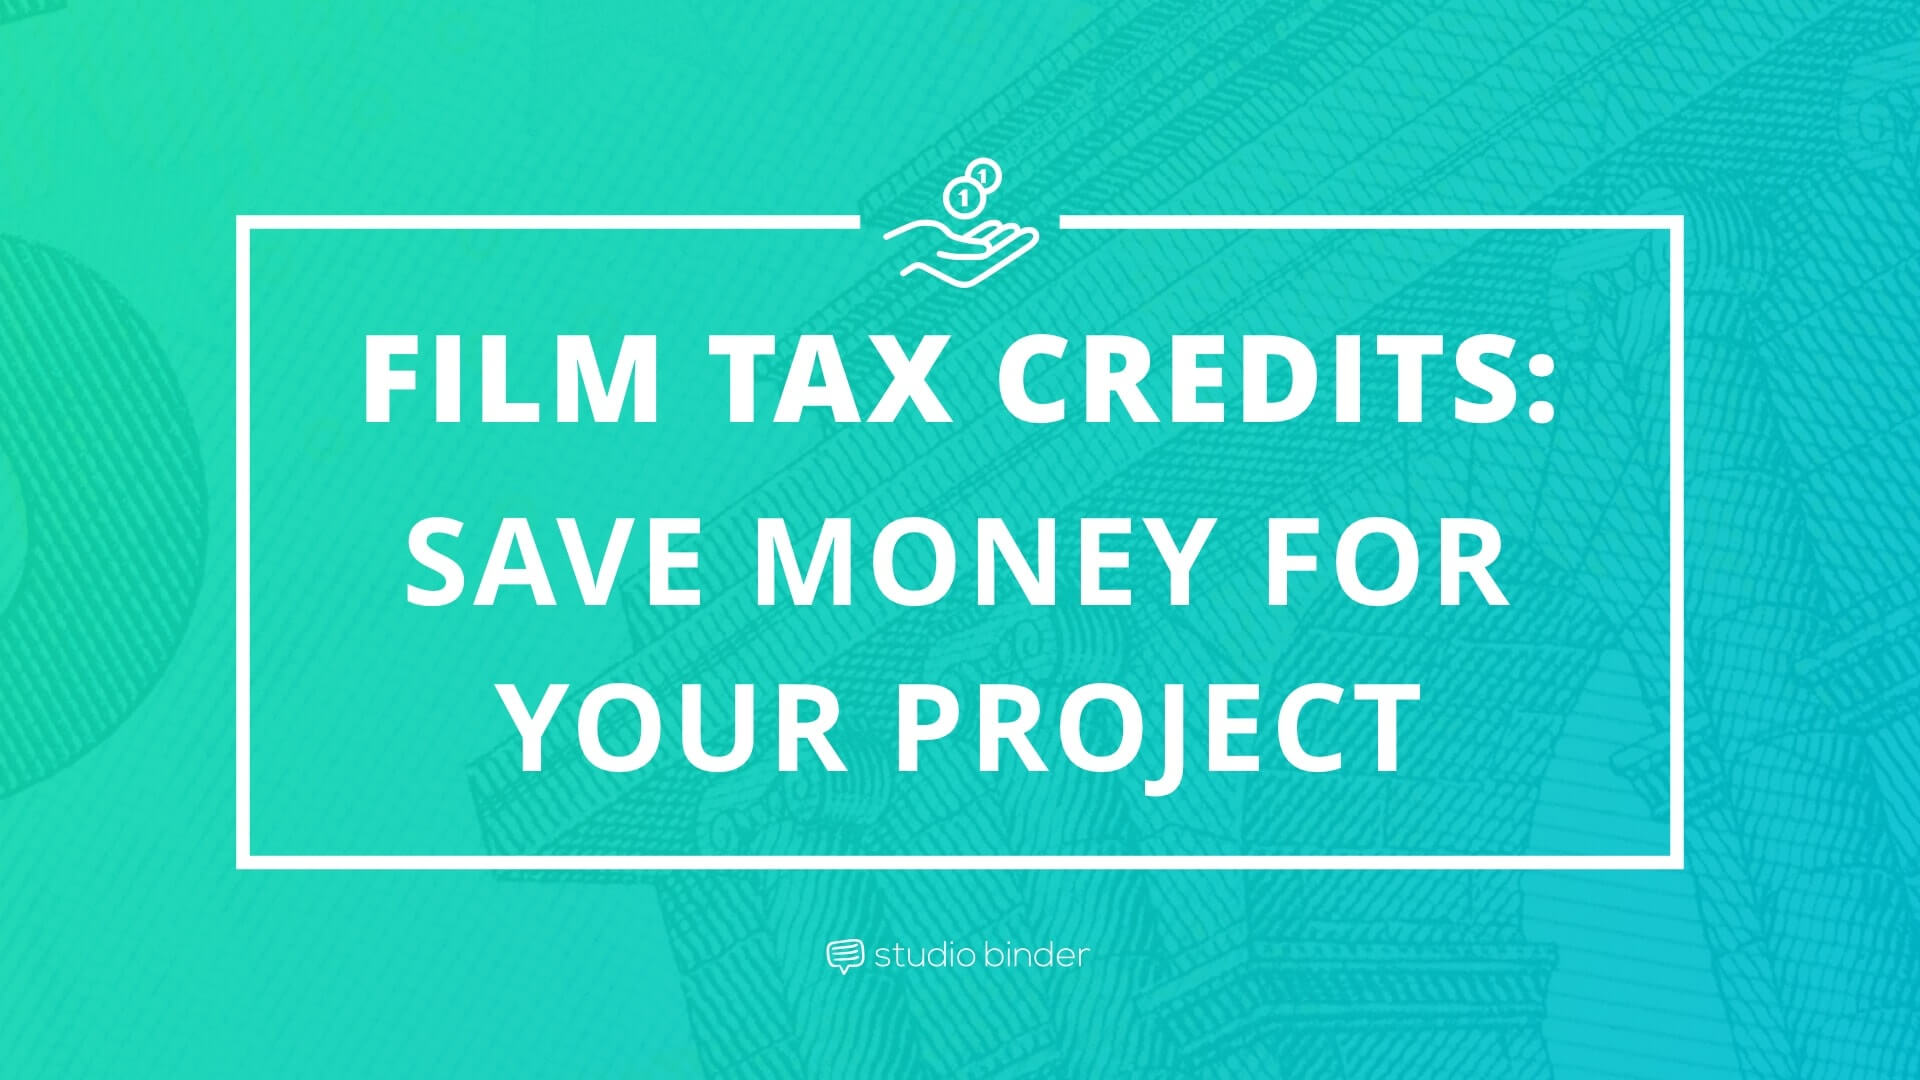 Film Tax Credits - How to Save Money for Your Project - Featured - StudioBinder.